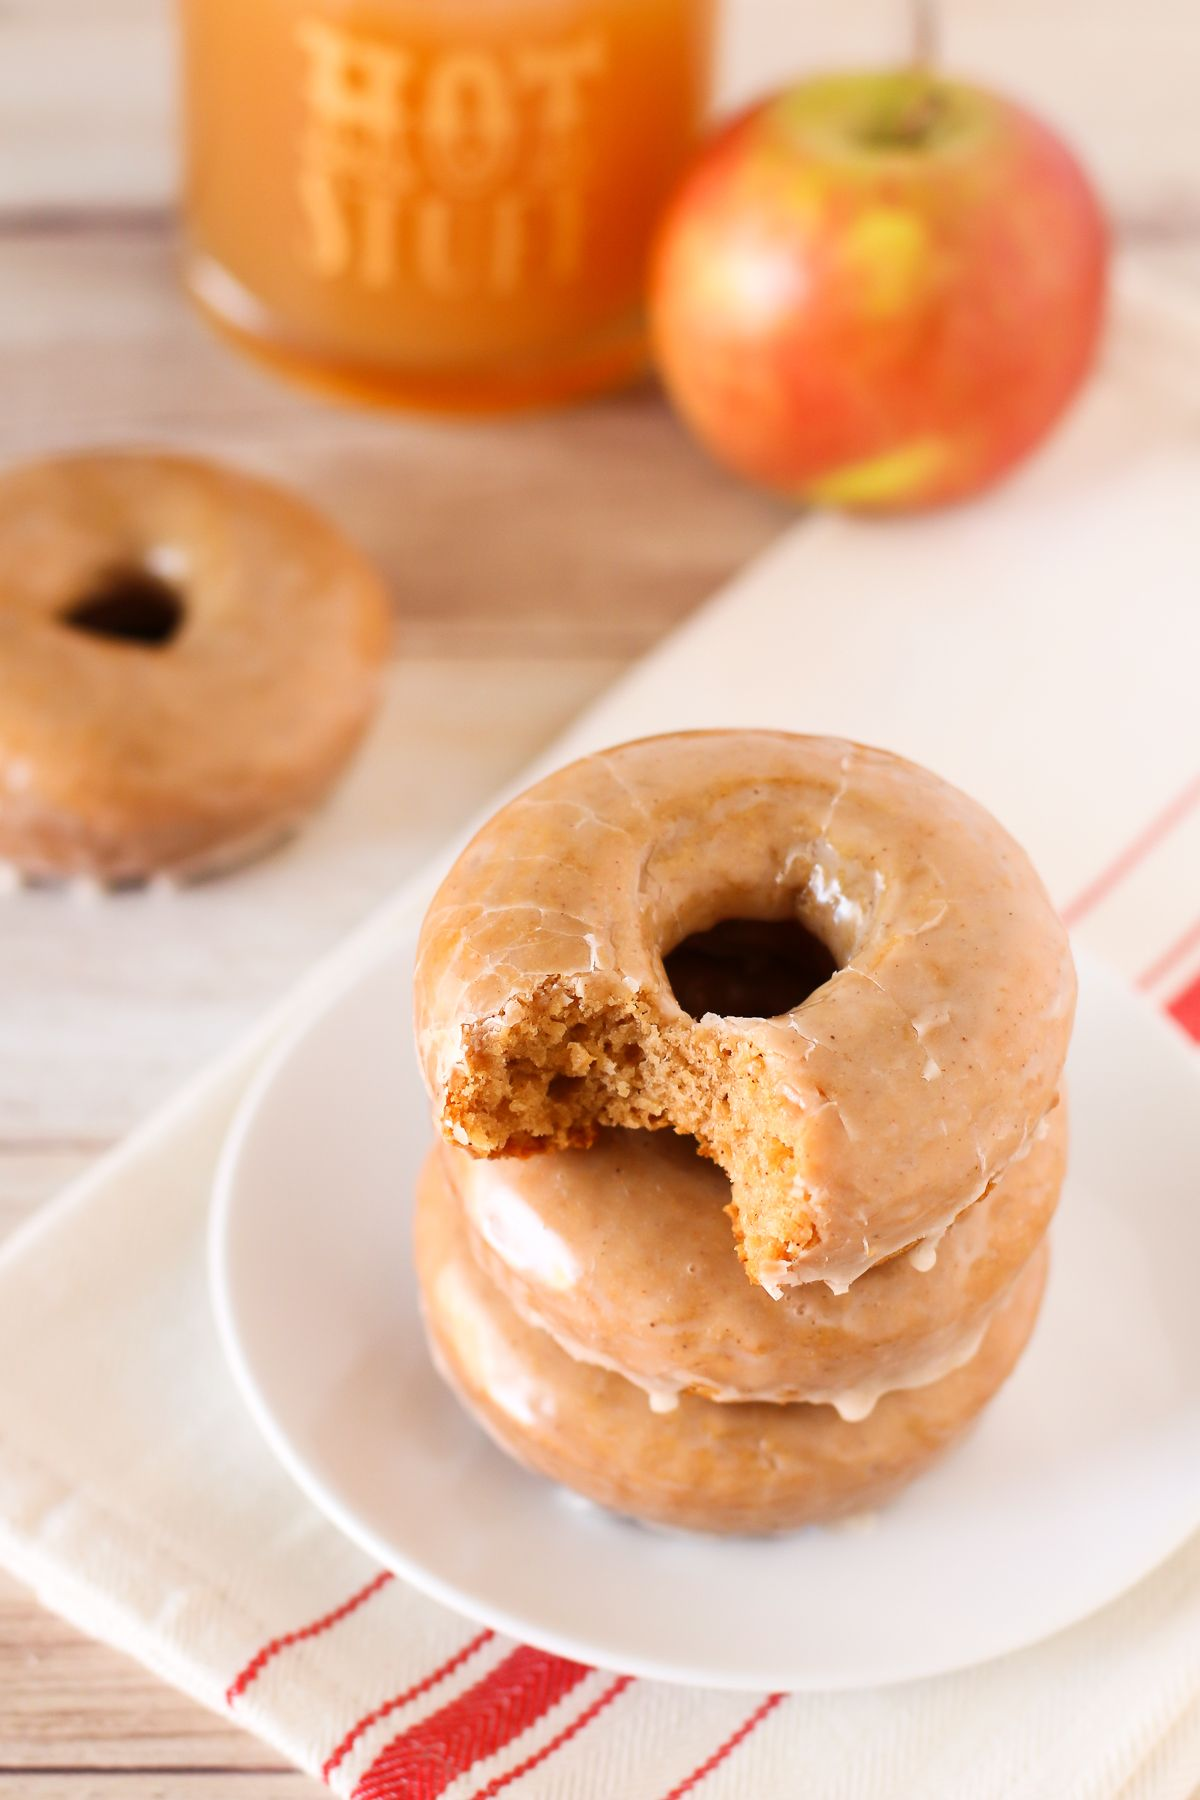 Gluten Free Vegan Apple Cider Donuts Baked In The Oven Not Fried Recipe Apple Cider Donuts Cider Donuts Apple Cider Donuts Baked